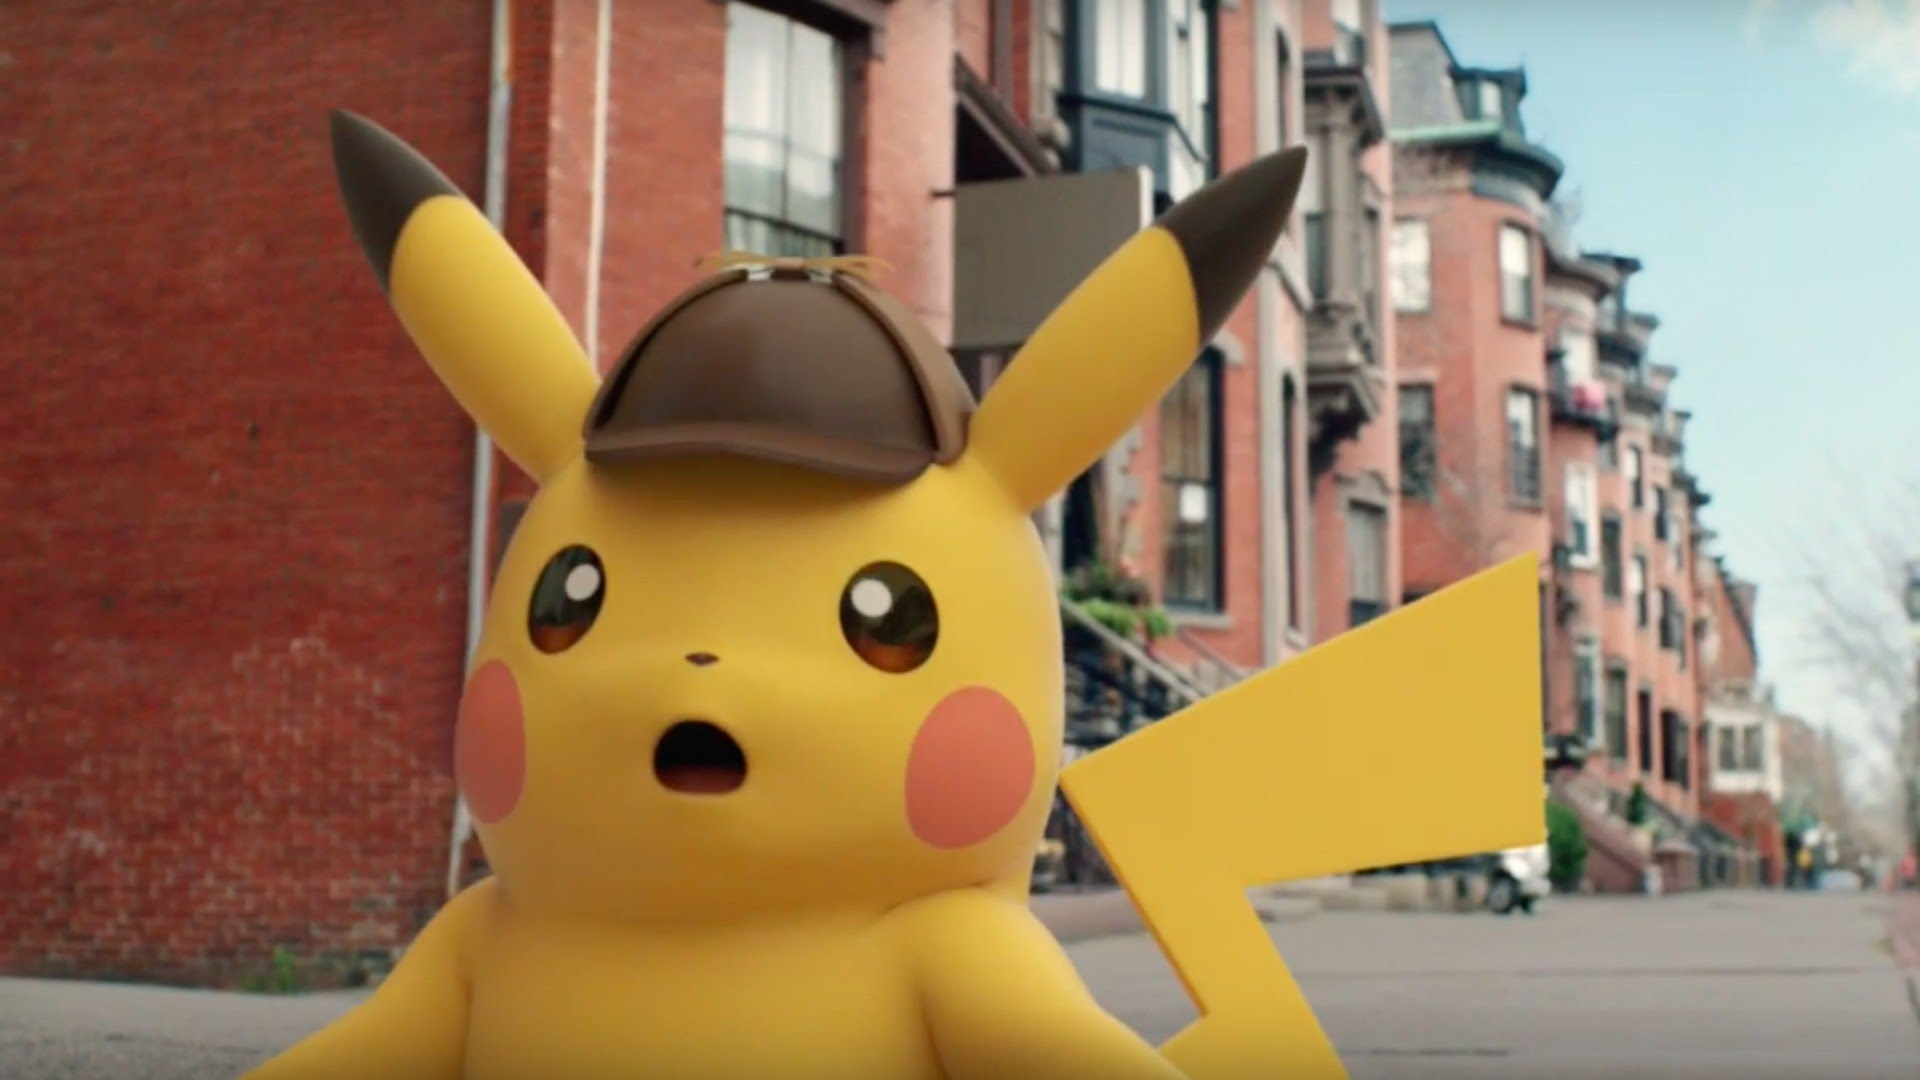 save detective pikachu game hd wallpapers read games